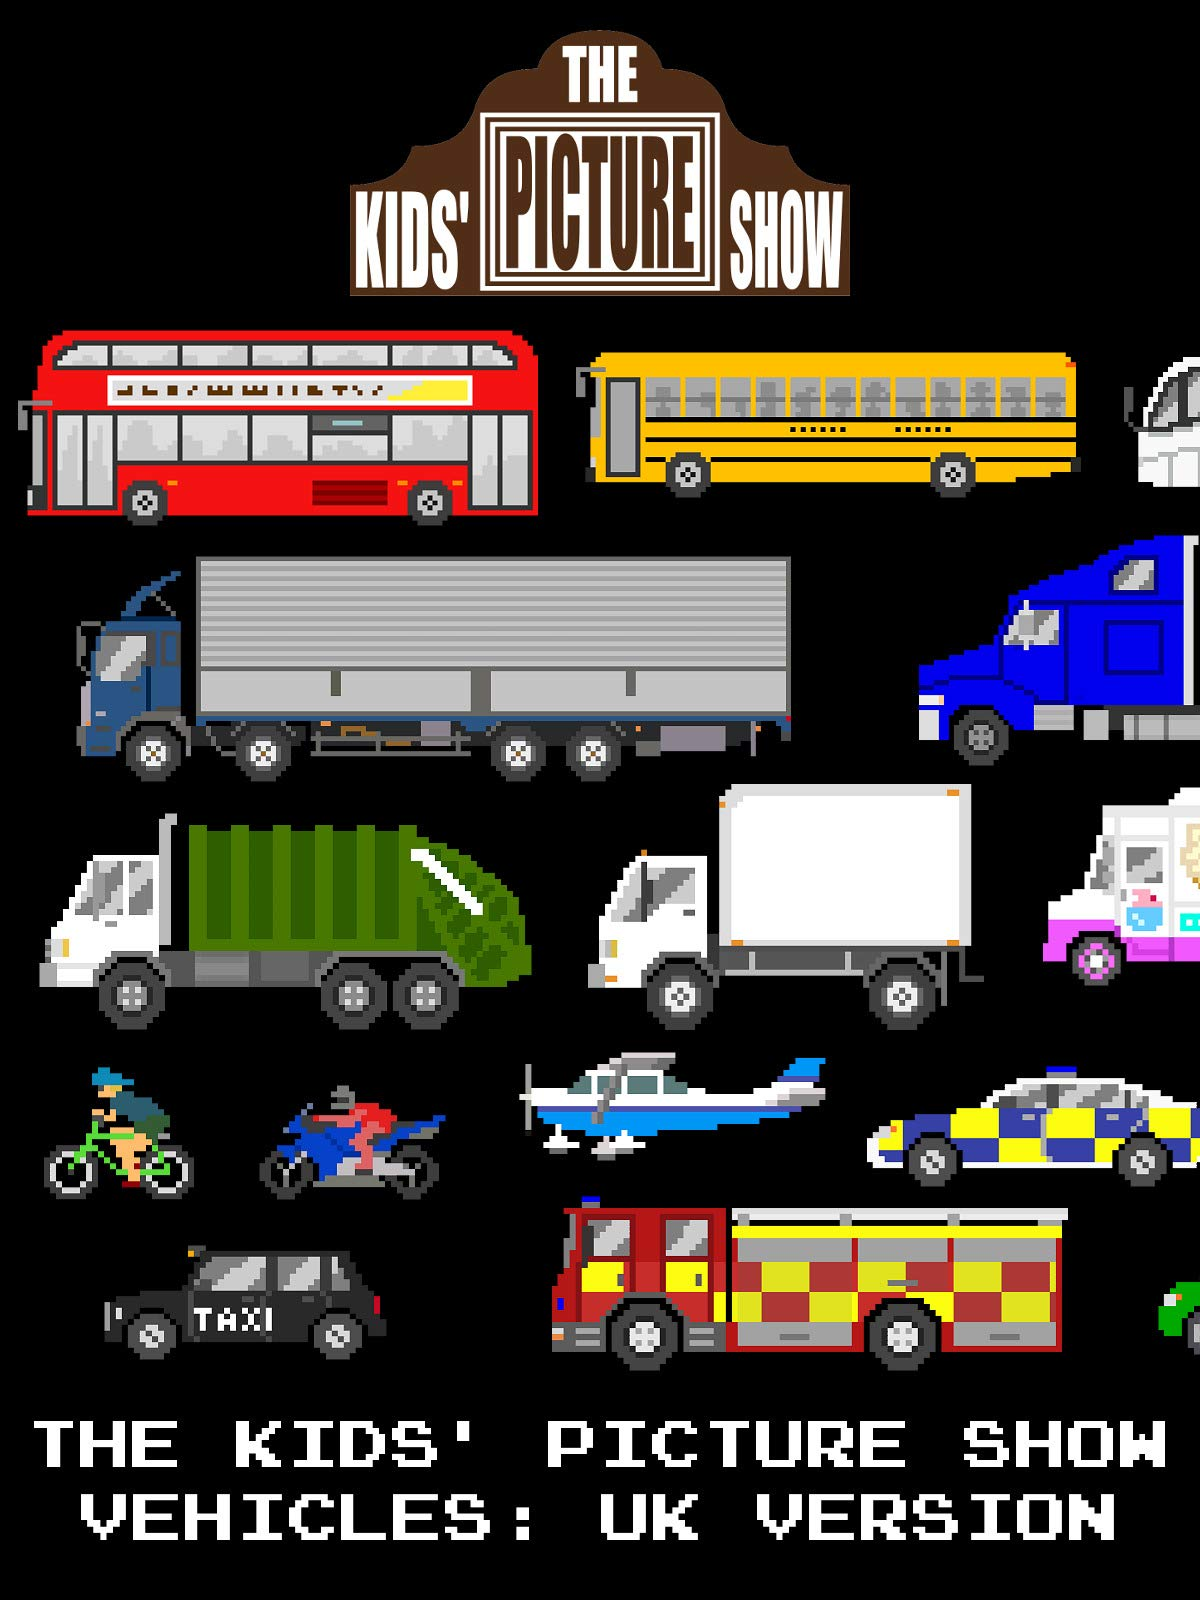 The Kids' Picture Show - Vehicles: UK Version